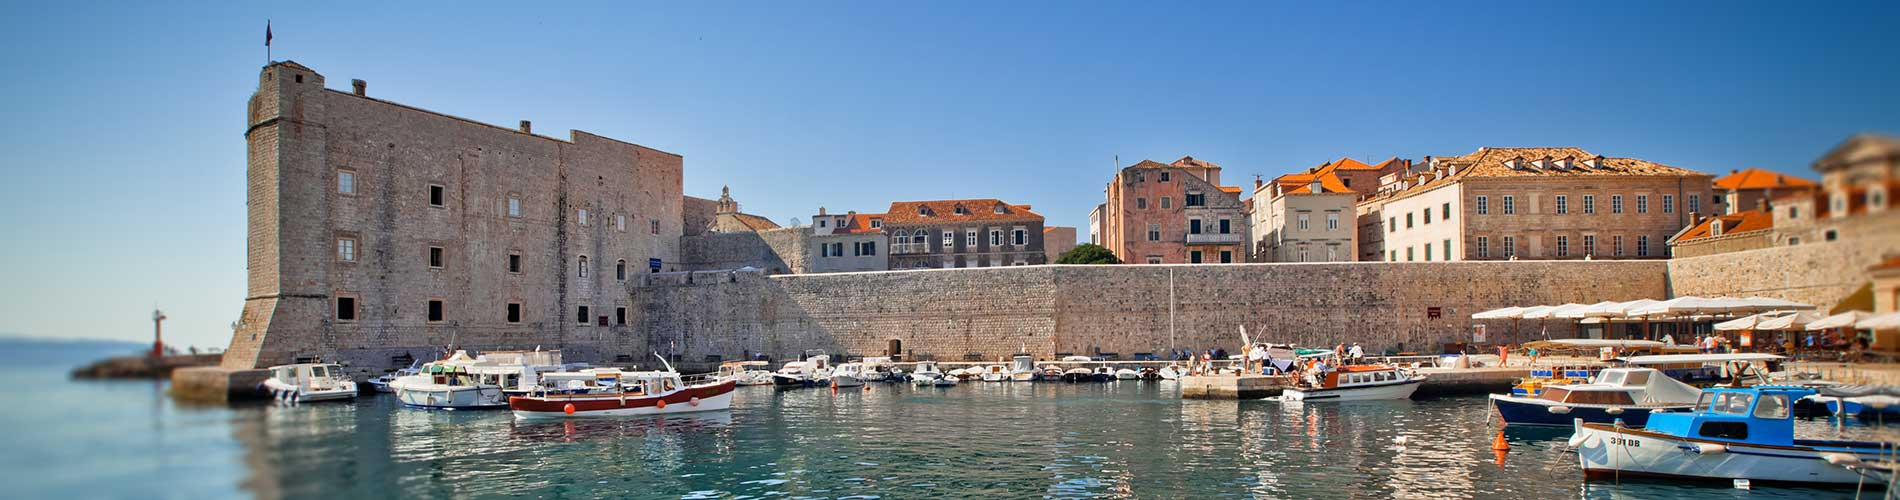 Dubrovnik Old Town Harbour.jpg